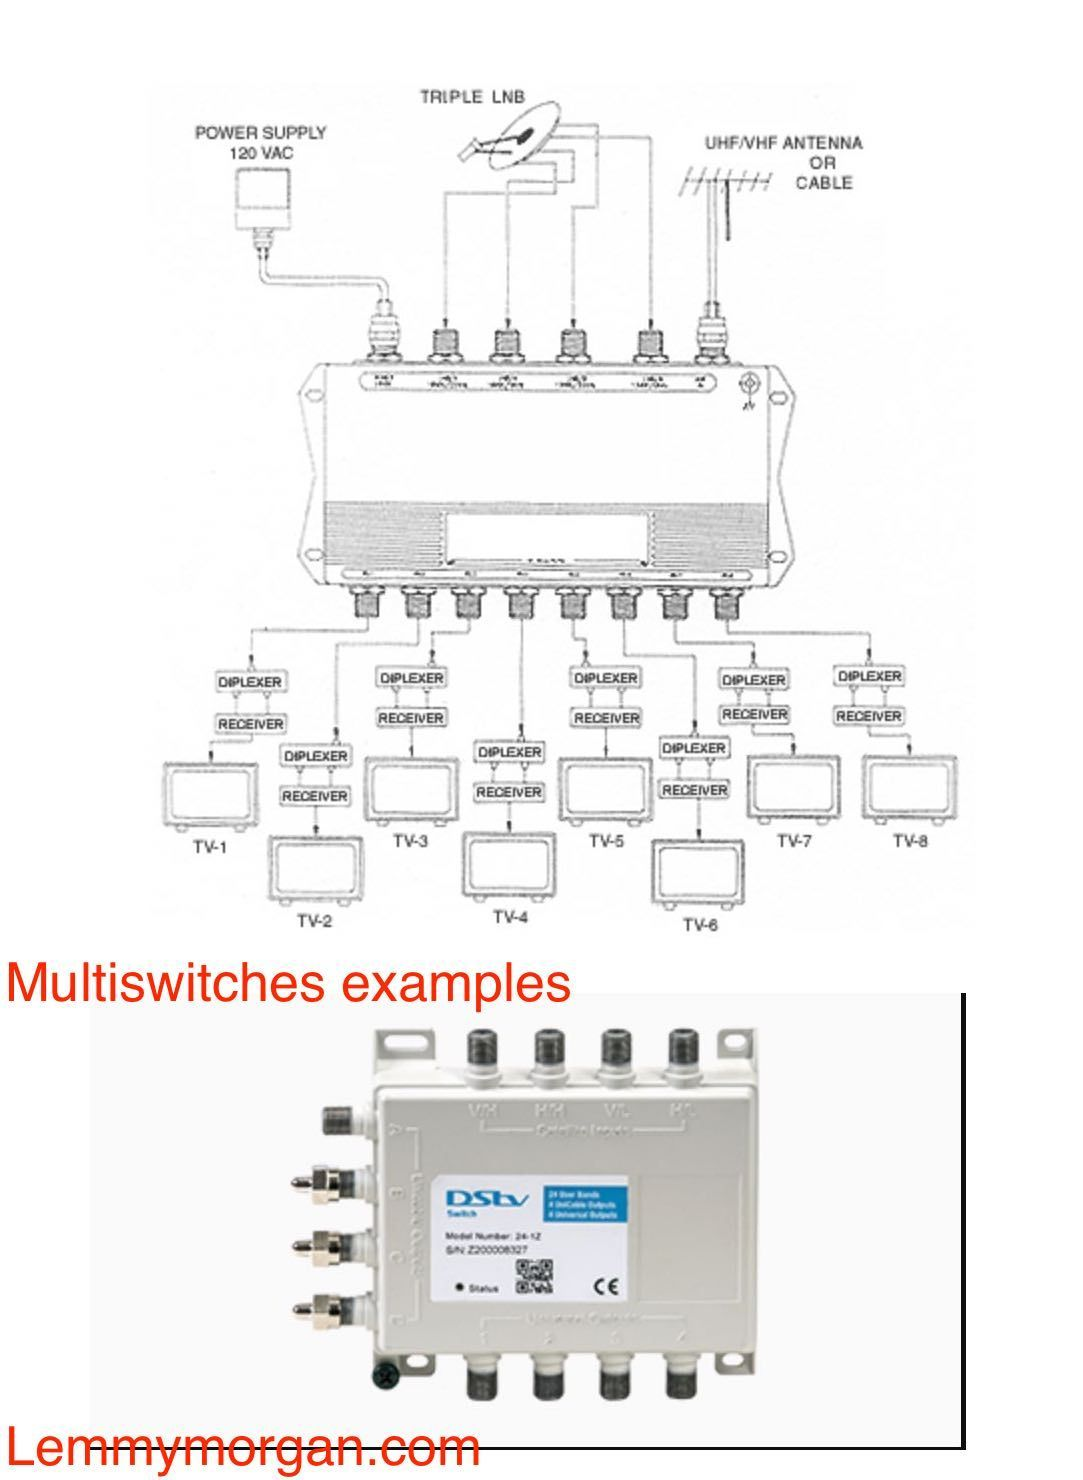 diseqc diplexer splitter combiner differences u0026 uses with satellite satellite tv wiring diagram  [ 1083 x 1480 Pixel ]